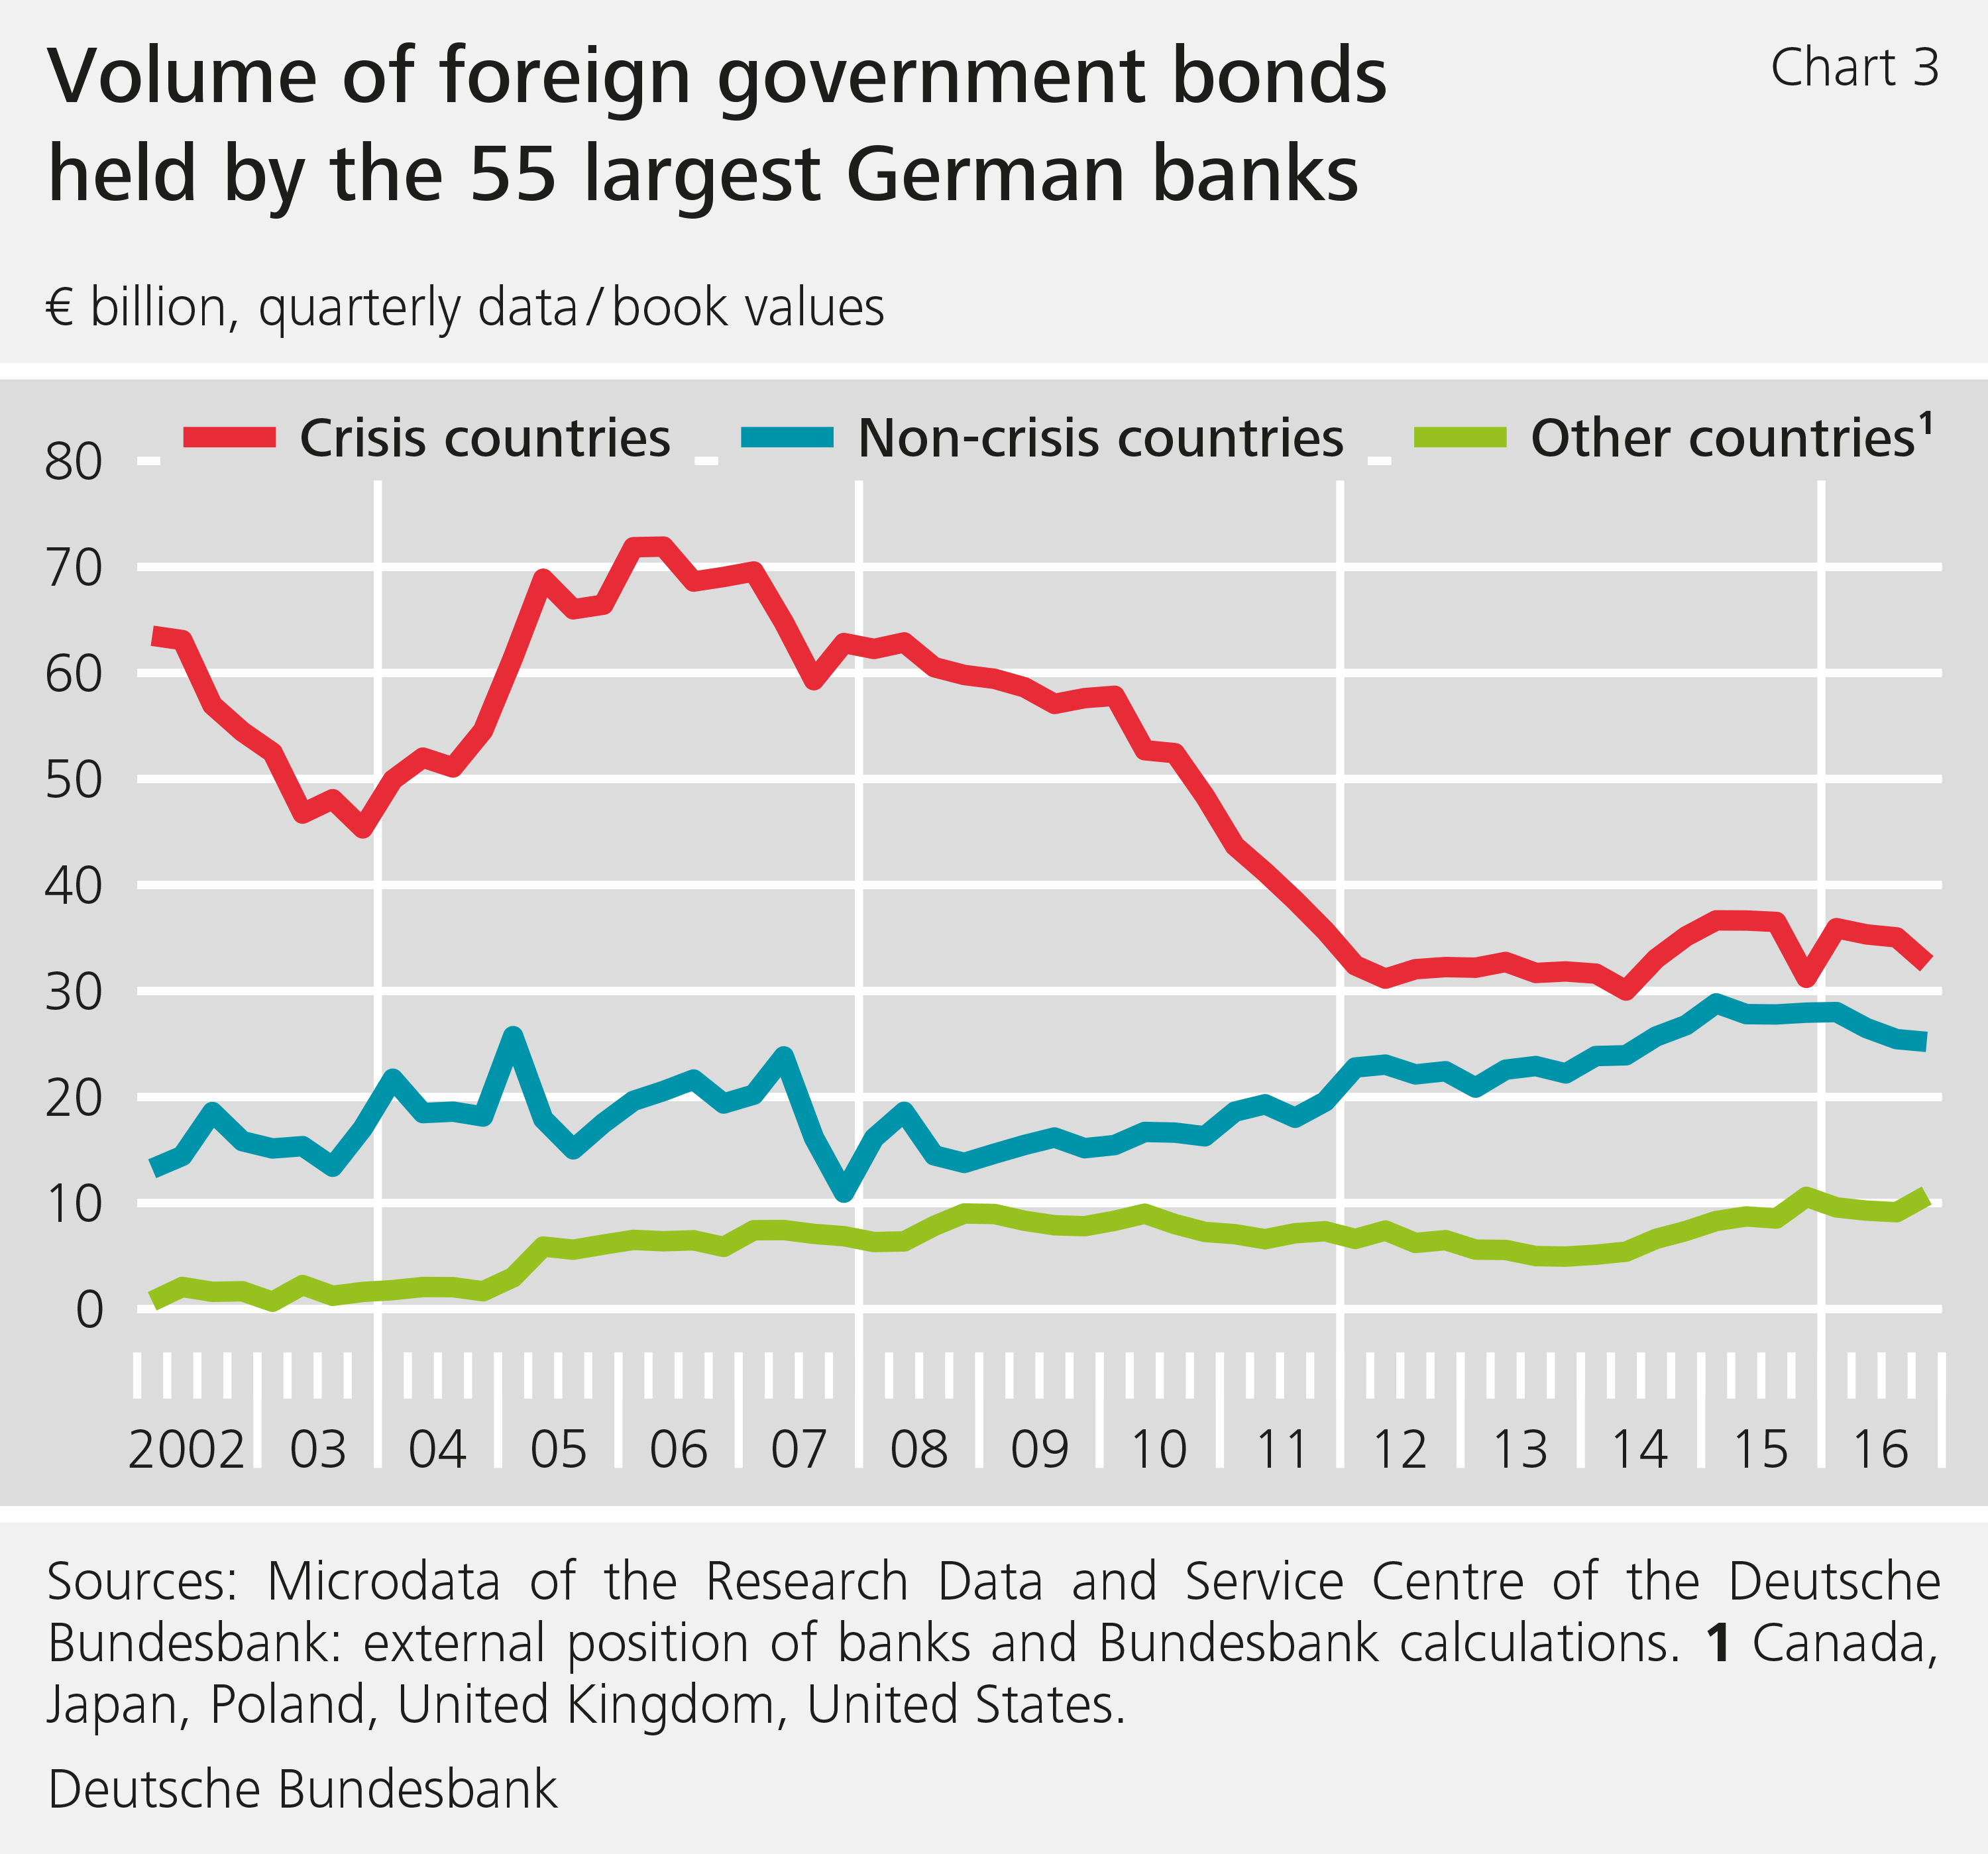 Chart 3: Volume of foreign government bonds held by the 55 largest German banks